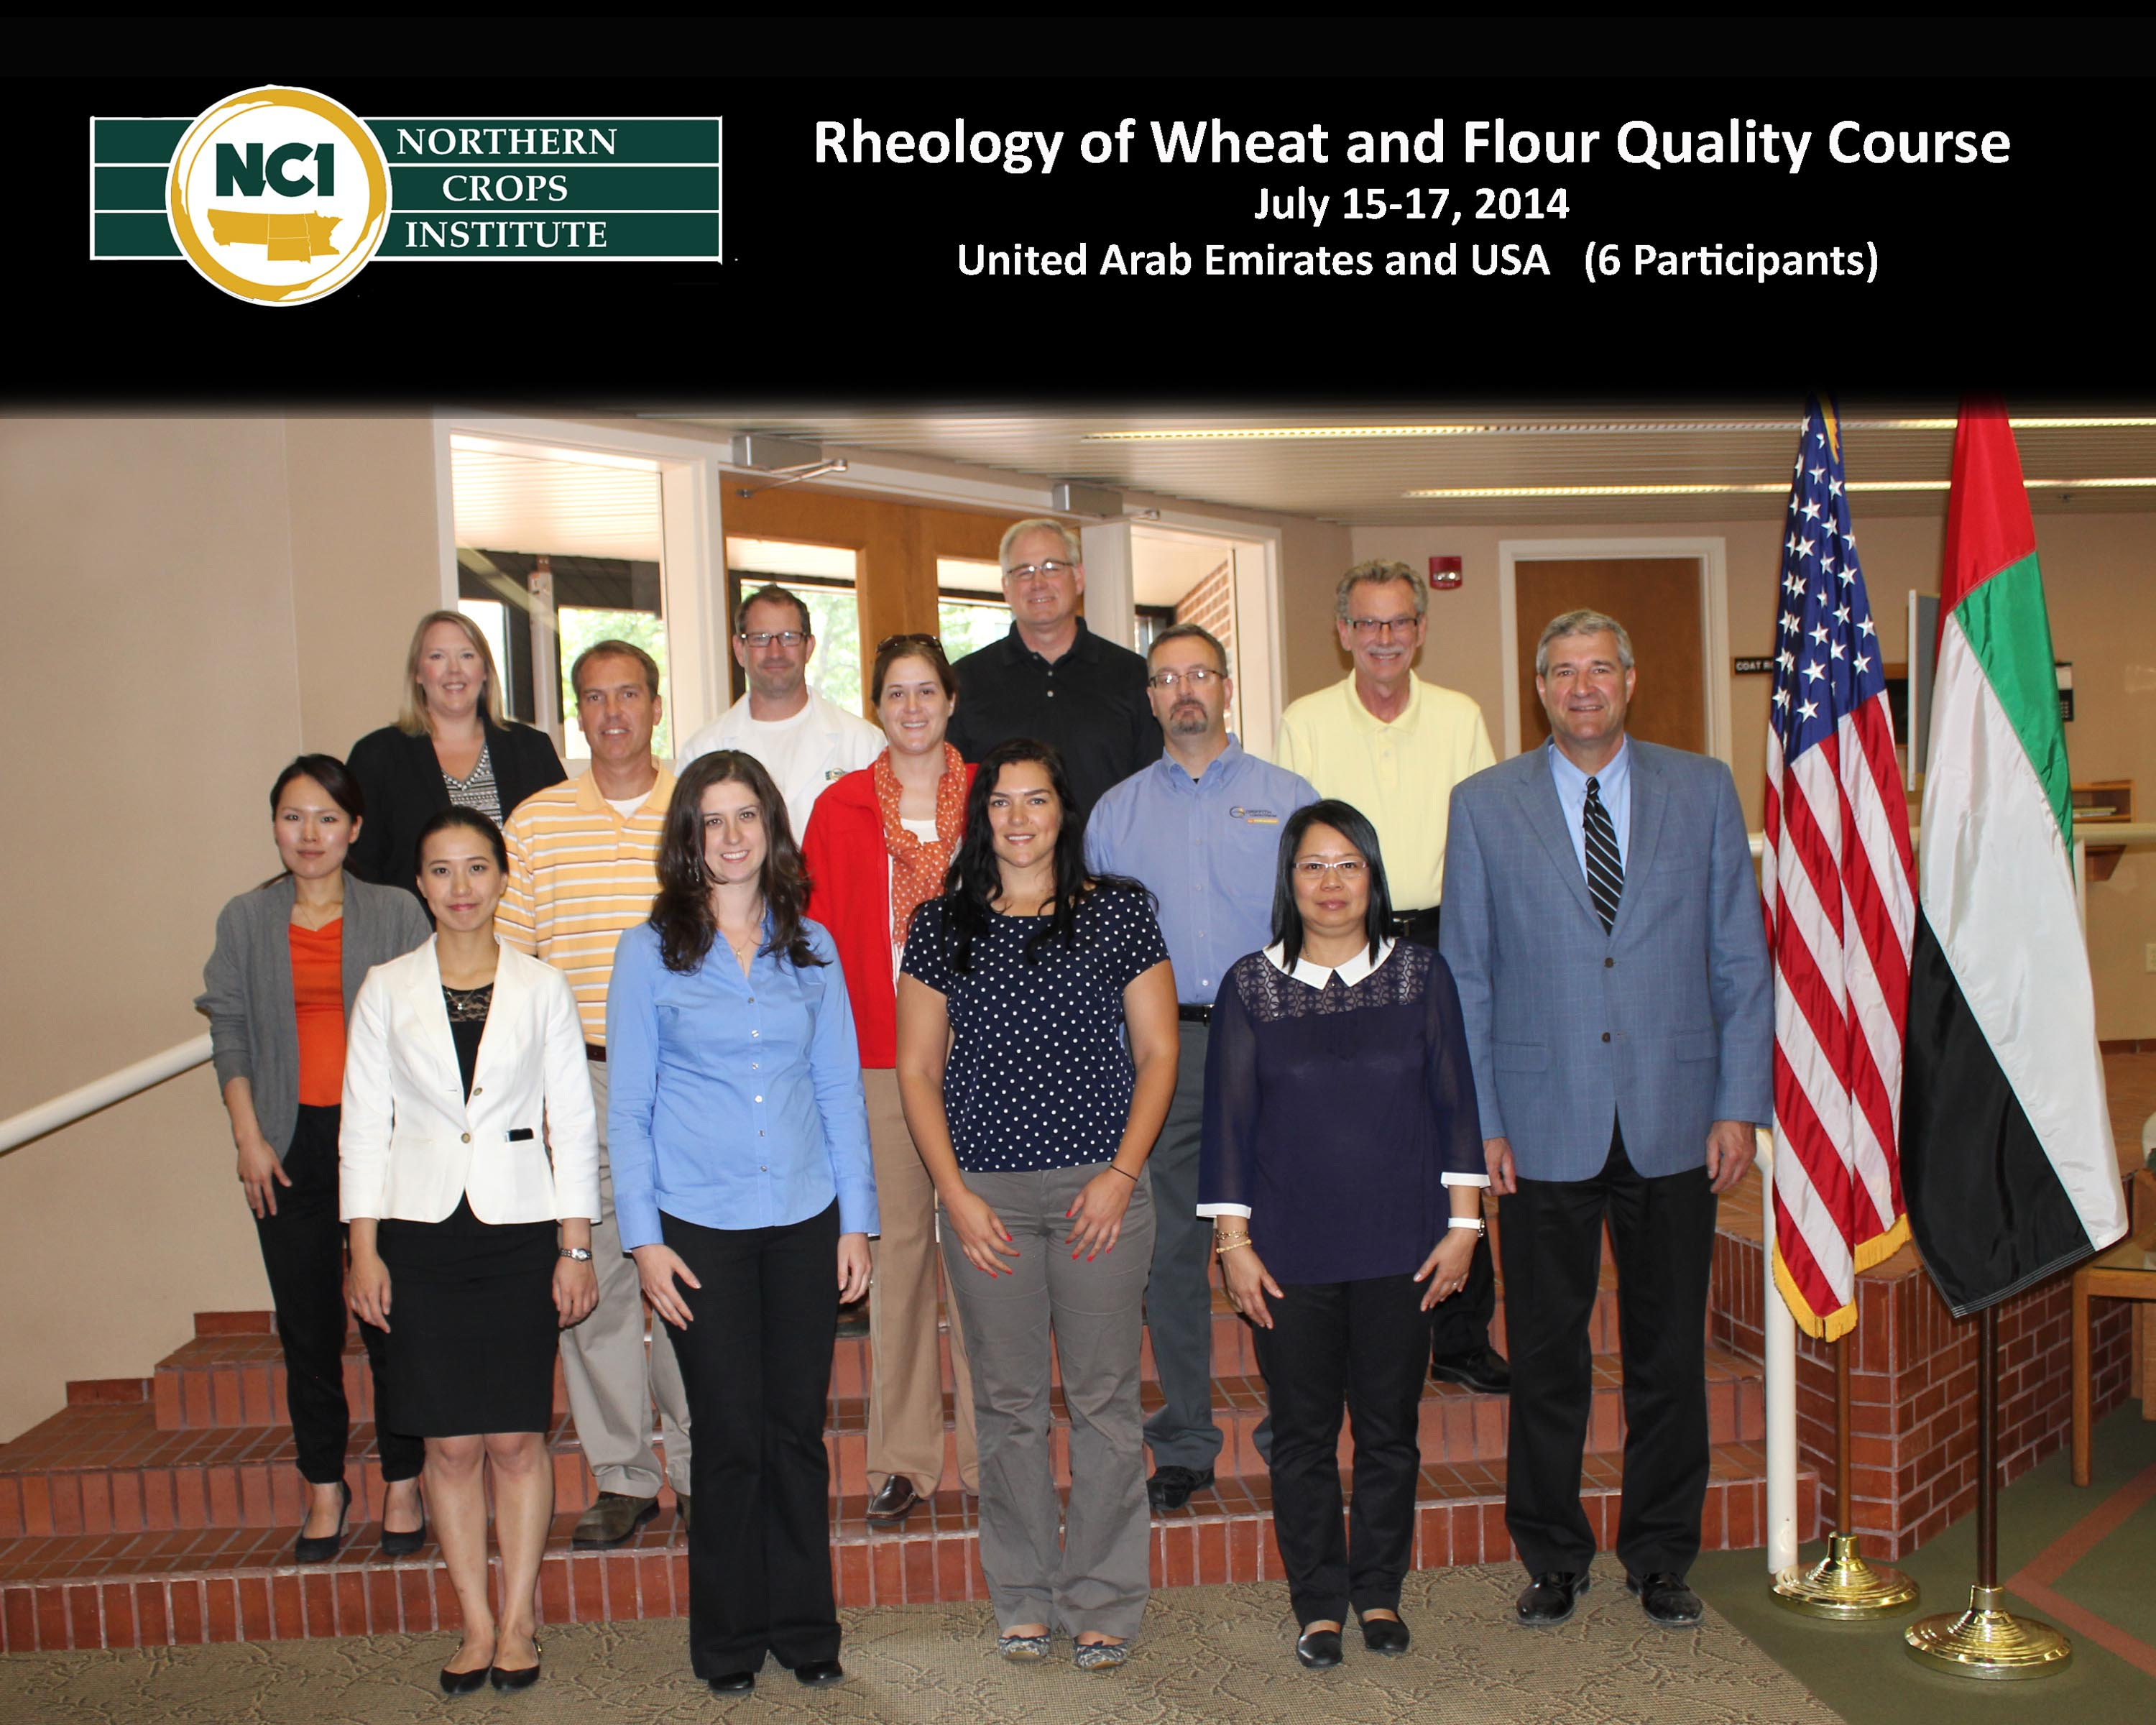 2014 Rheology of Wheat and Flour Quality Course 6914  1.jpg